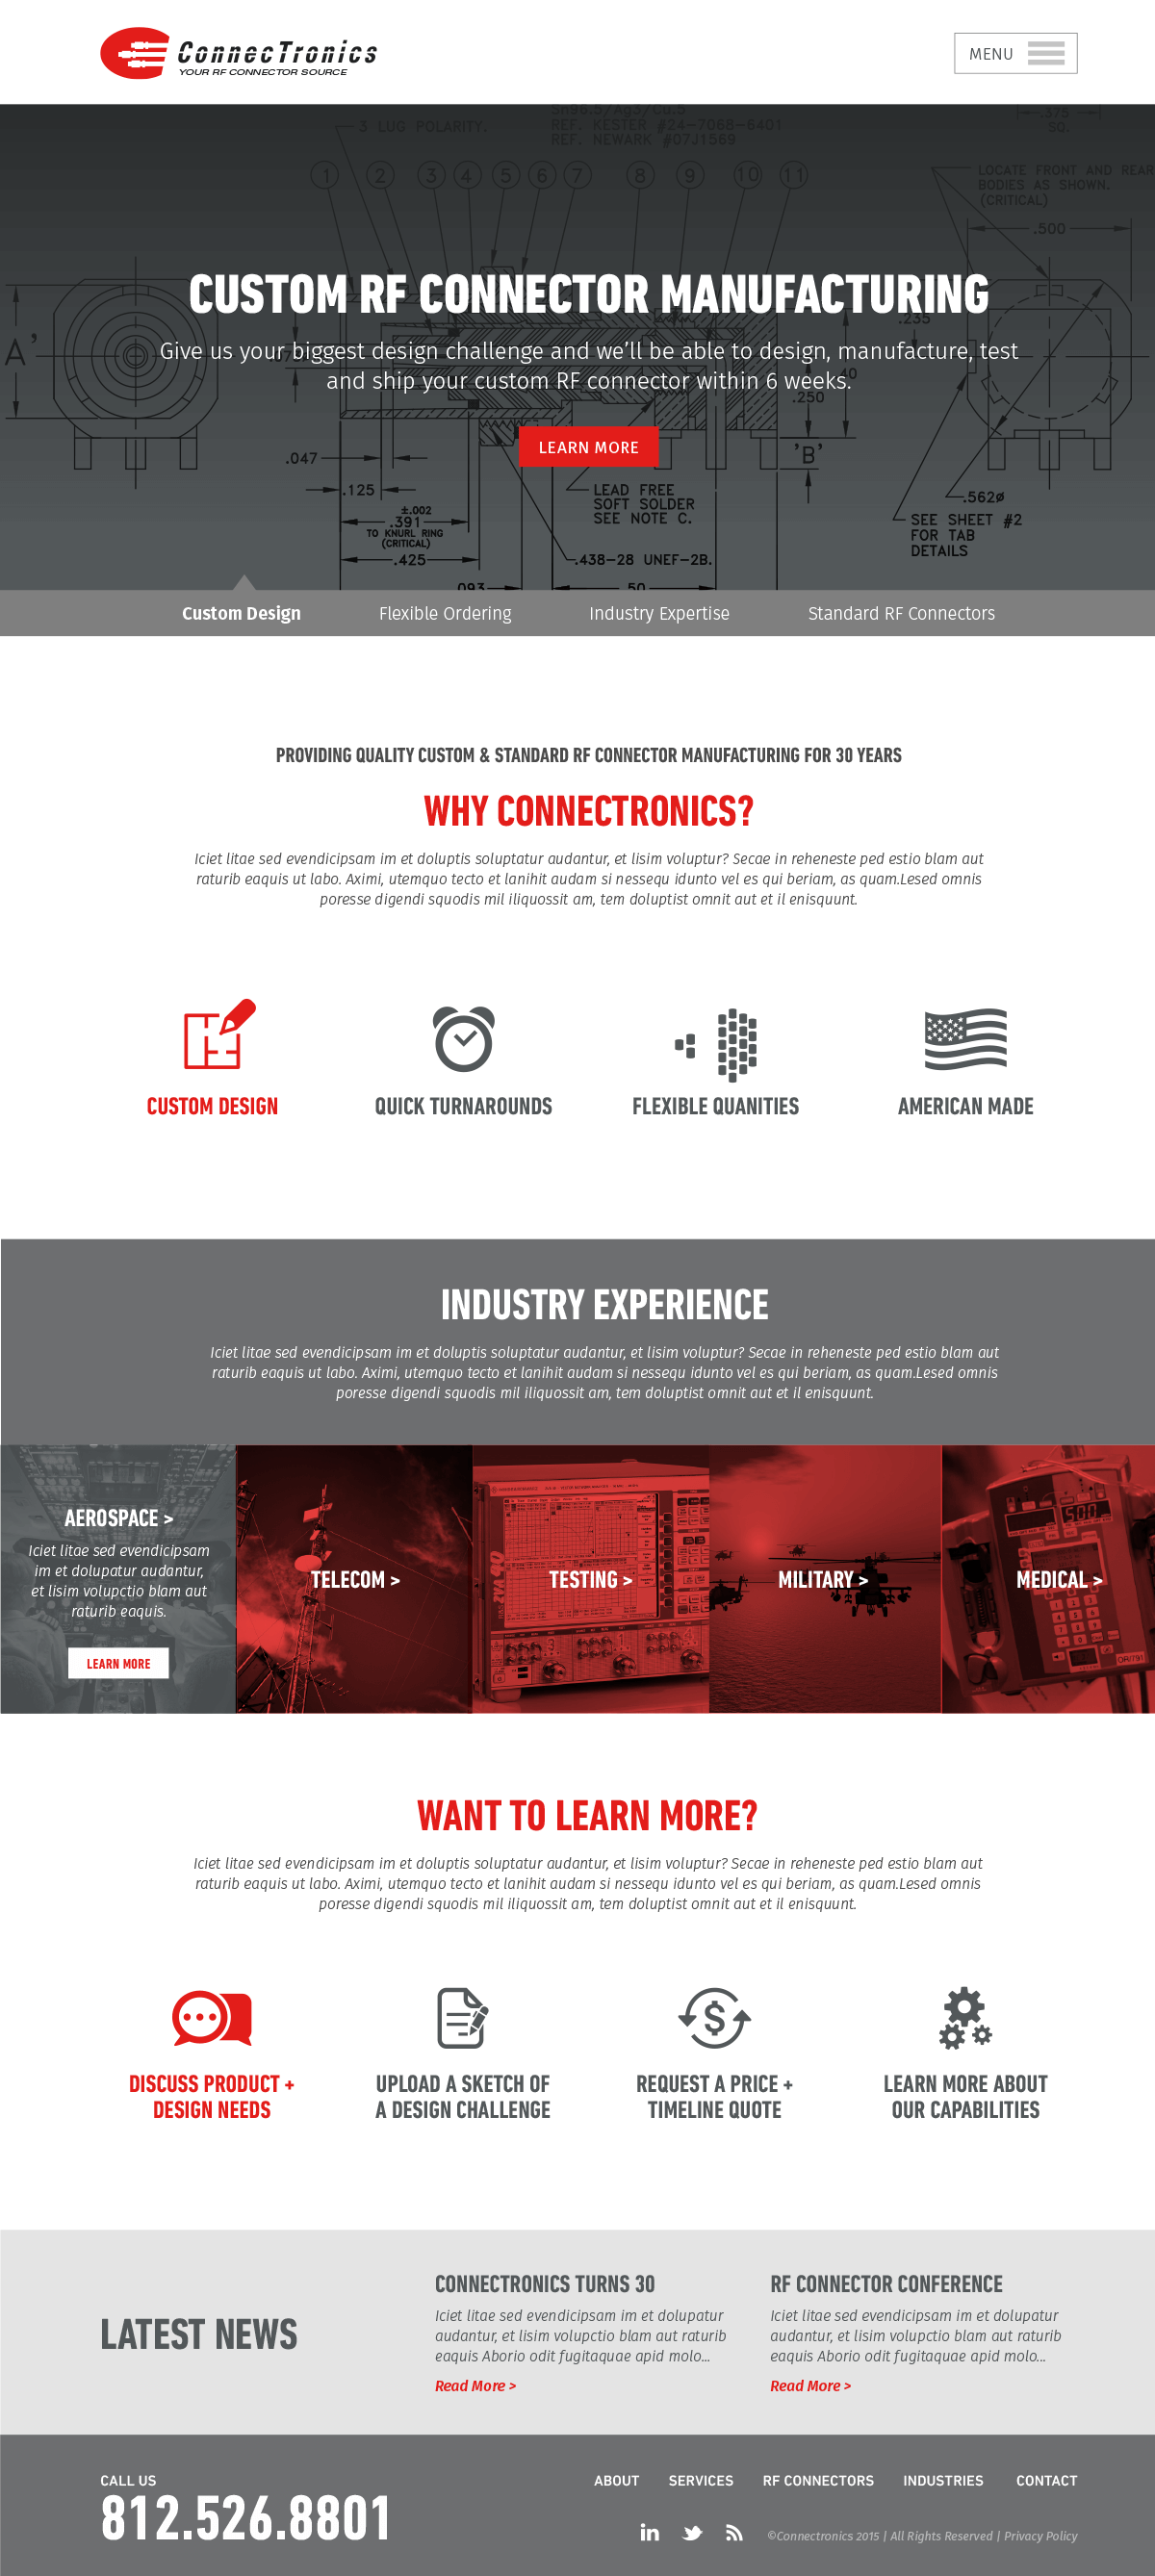 Connectronics - Industrial Website Home Page Design